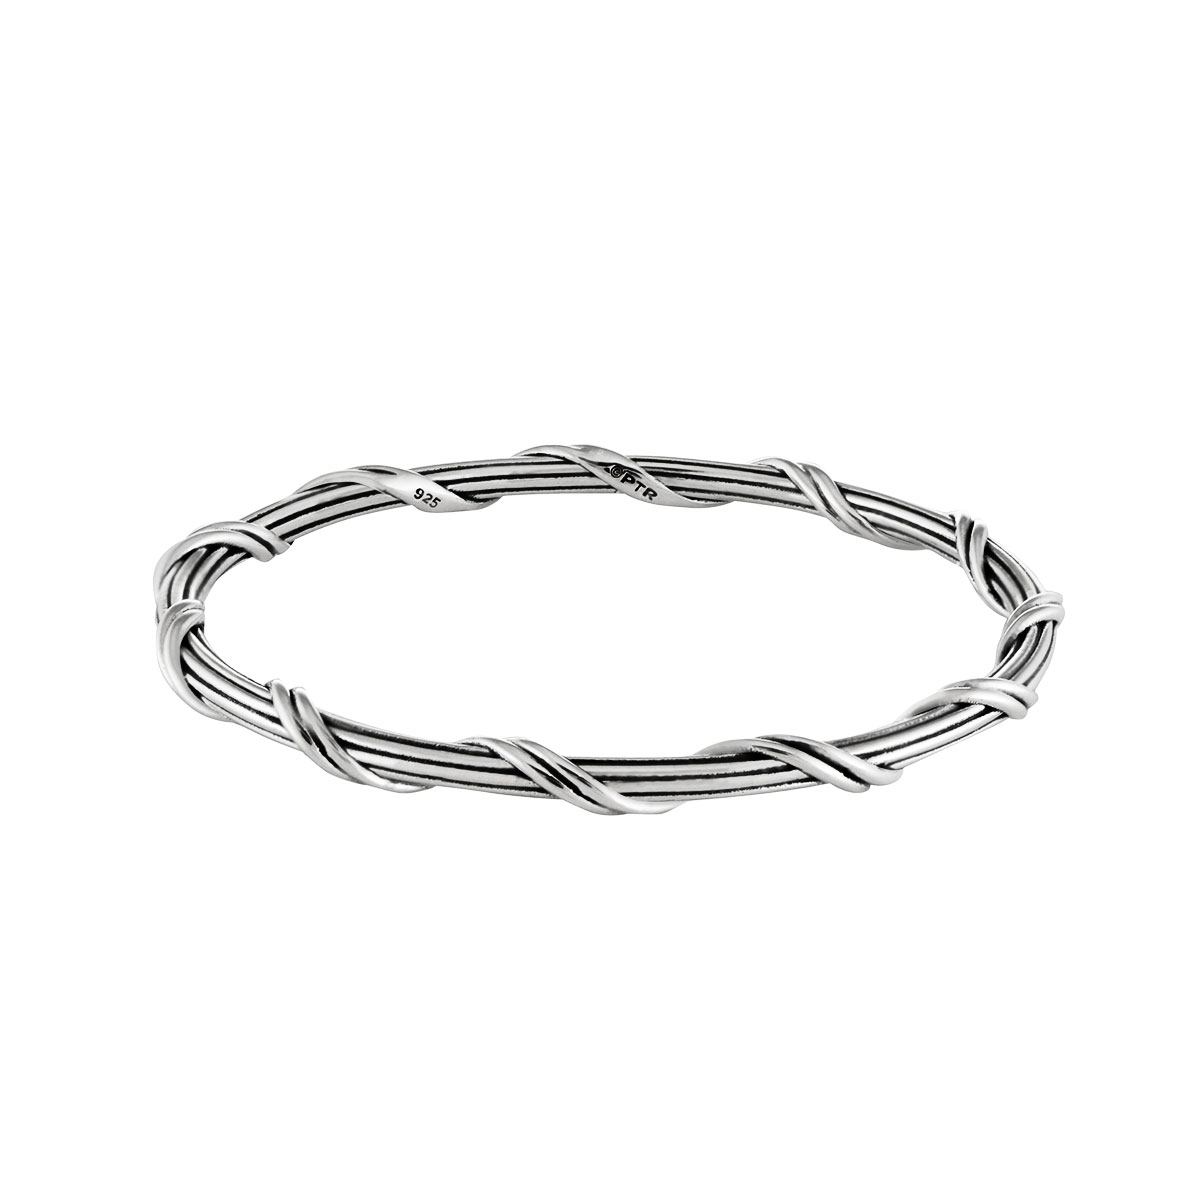 B7001SANONOMED_Ribbon-and-reed-sterling-silver-bangle-bracelet-slip-on_1_090915_v2